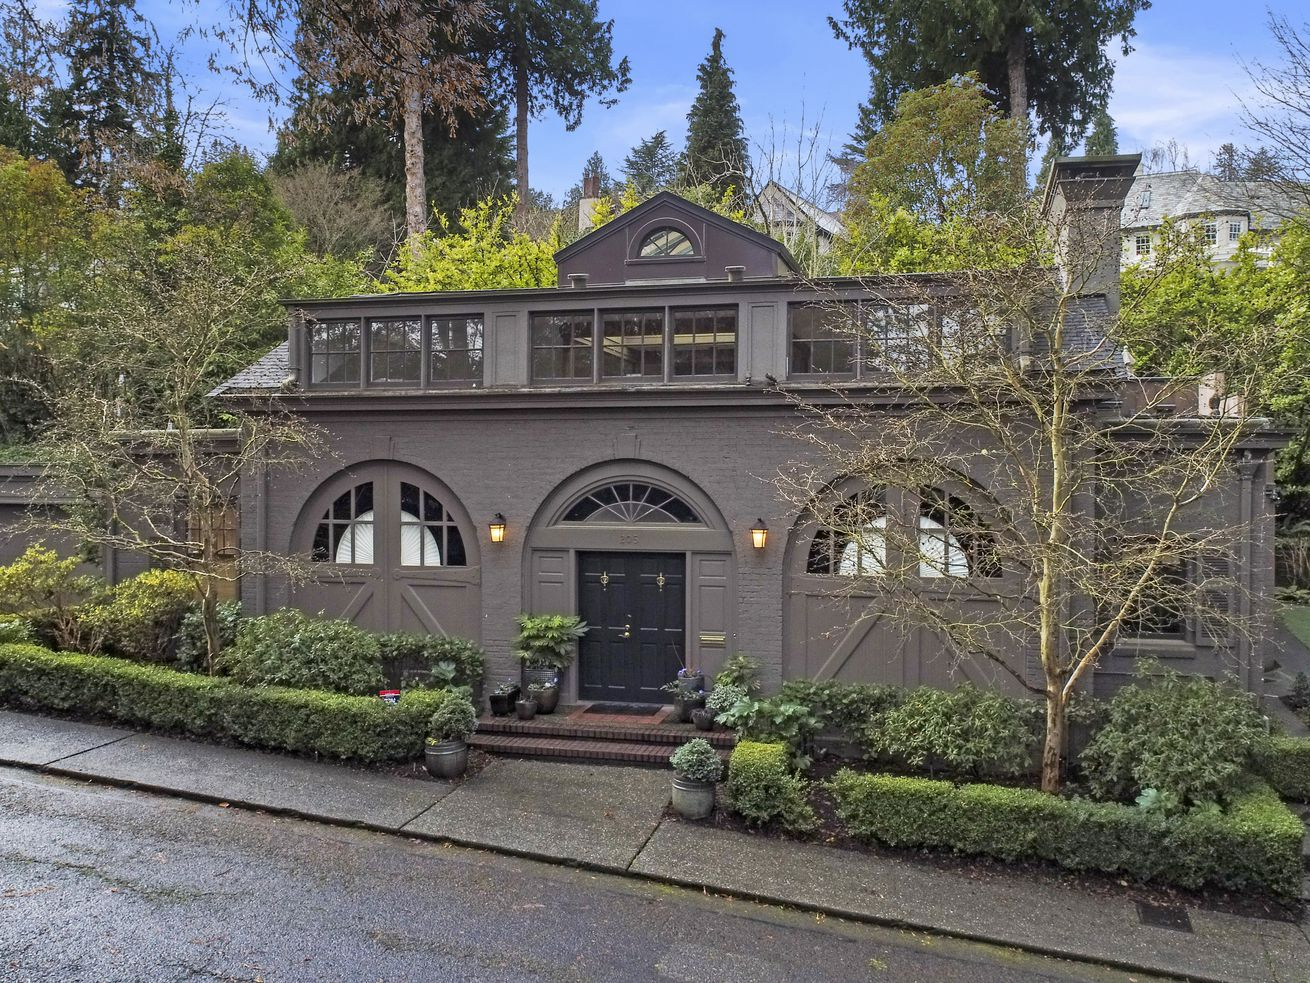 Converted carriage house in Seattle asks $2M